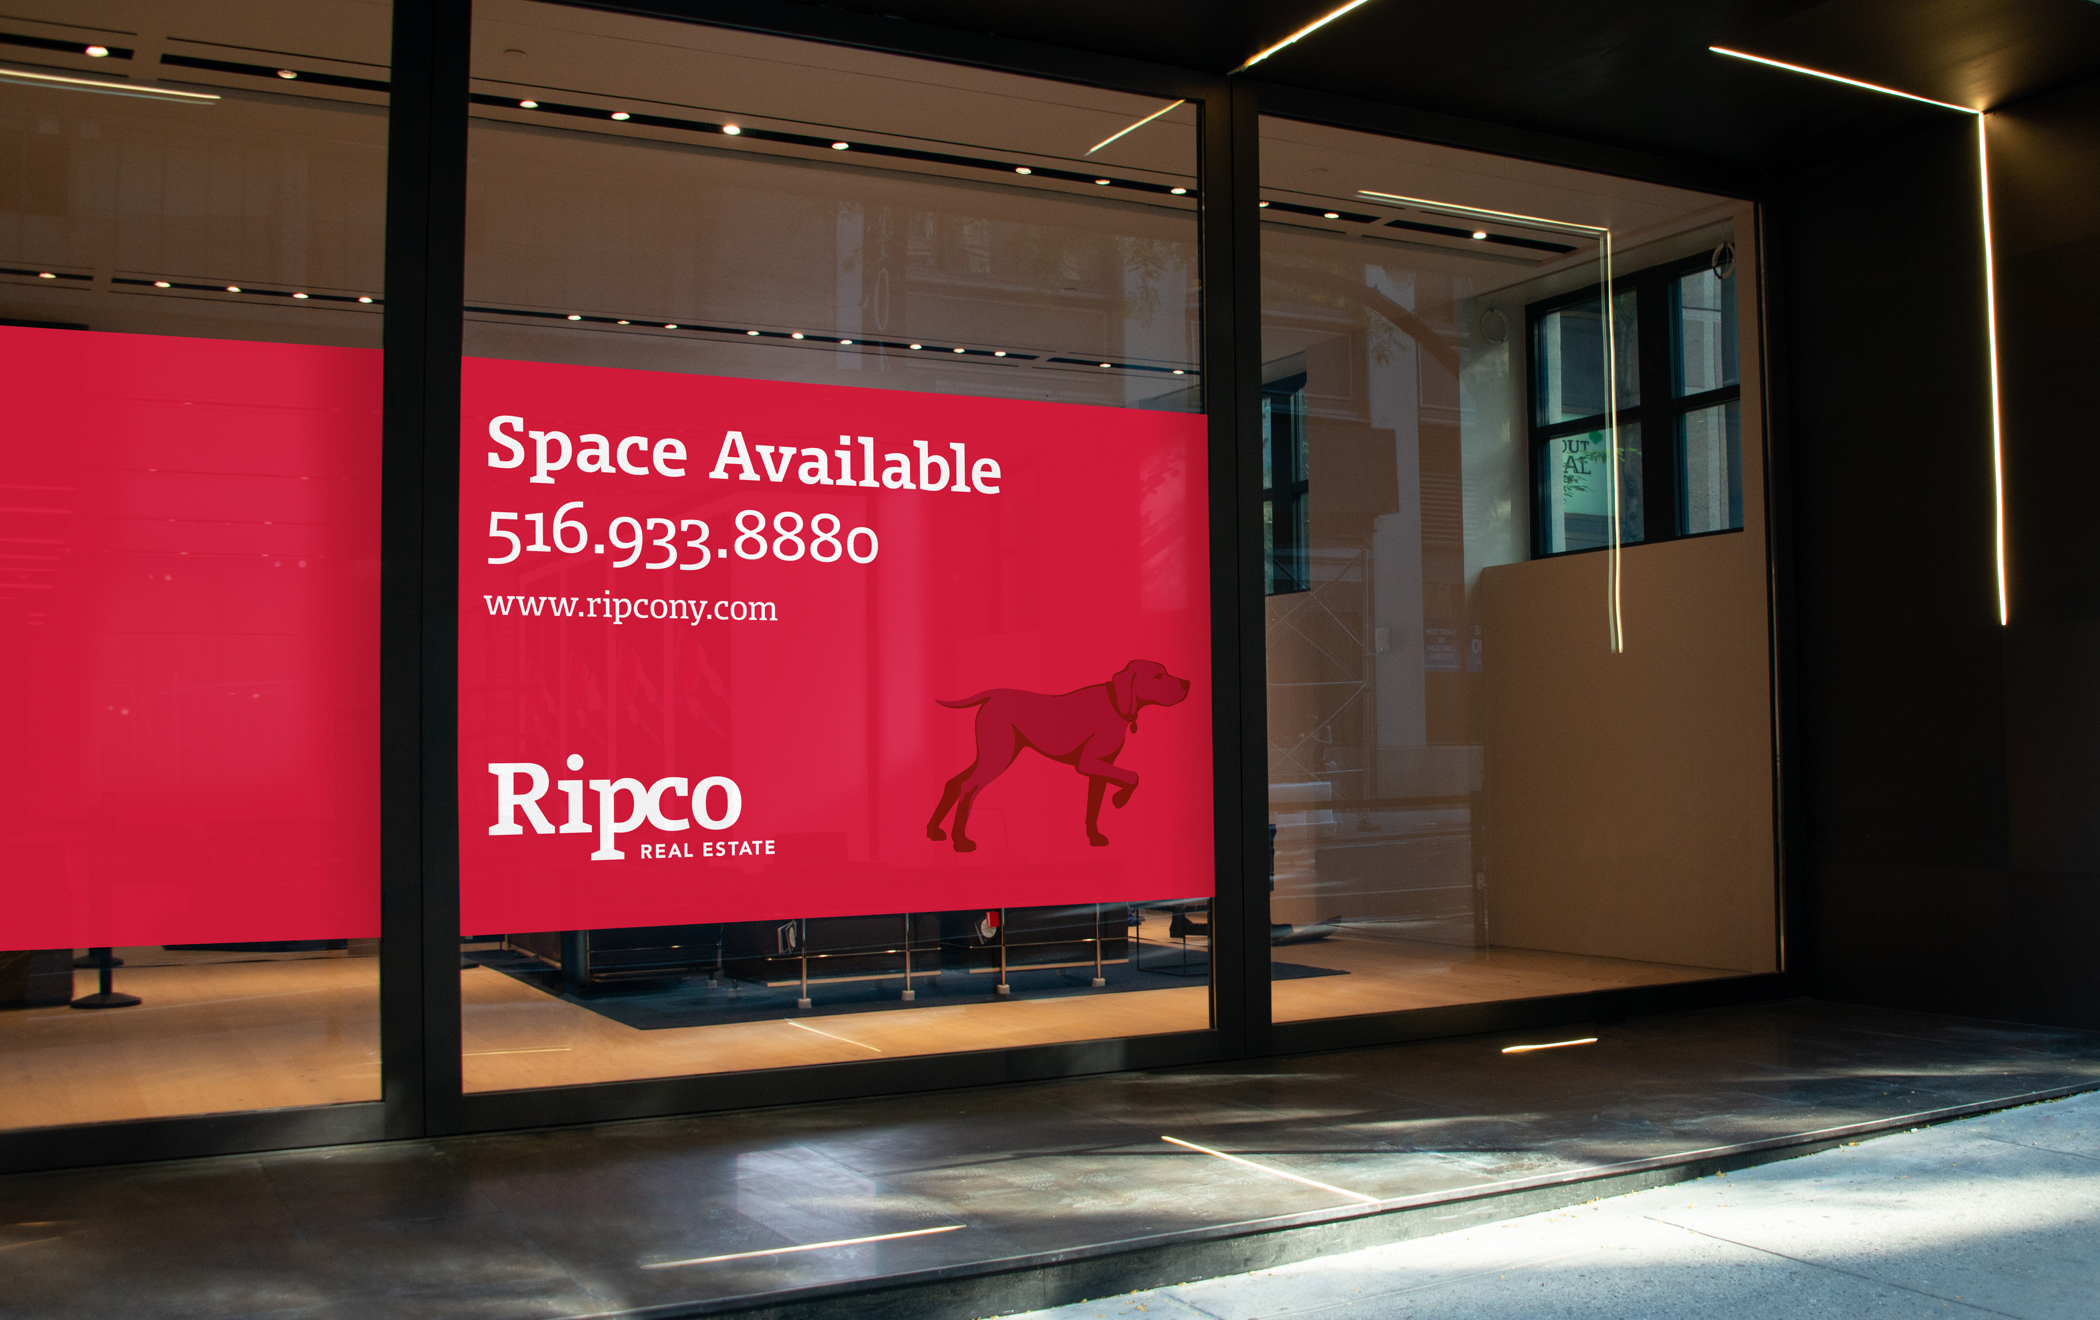 A large red window poster advertising available space with the Ripco logo and hunting-dog-in-a-pointer-pose symbol.